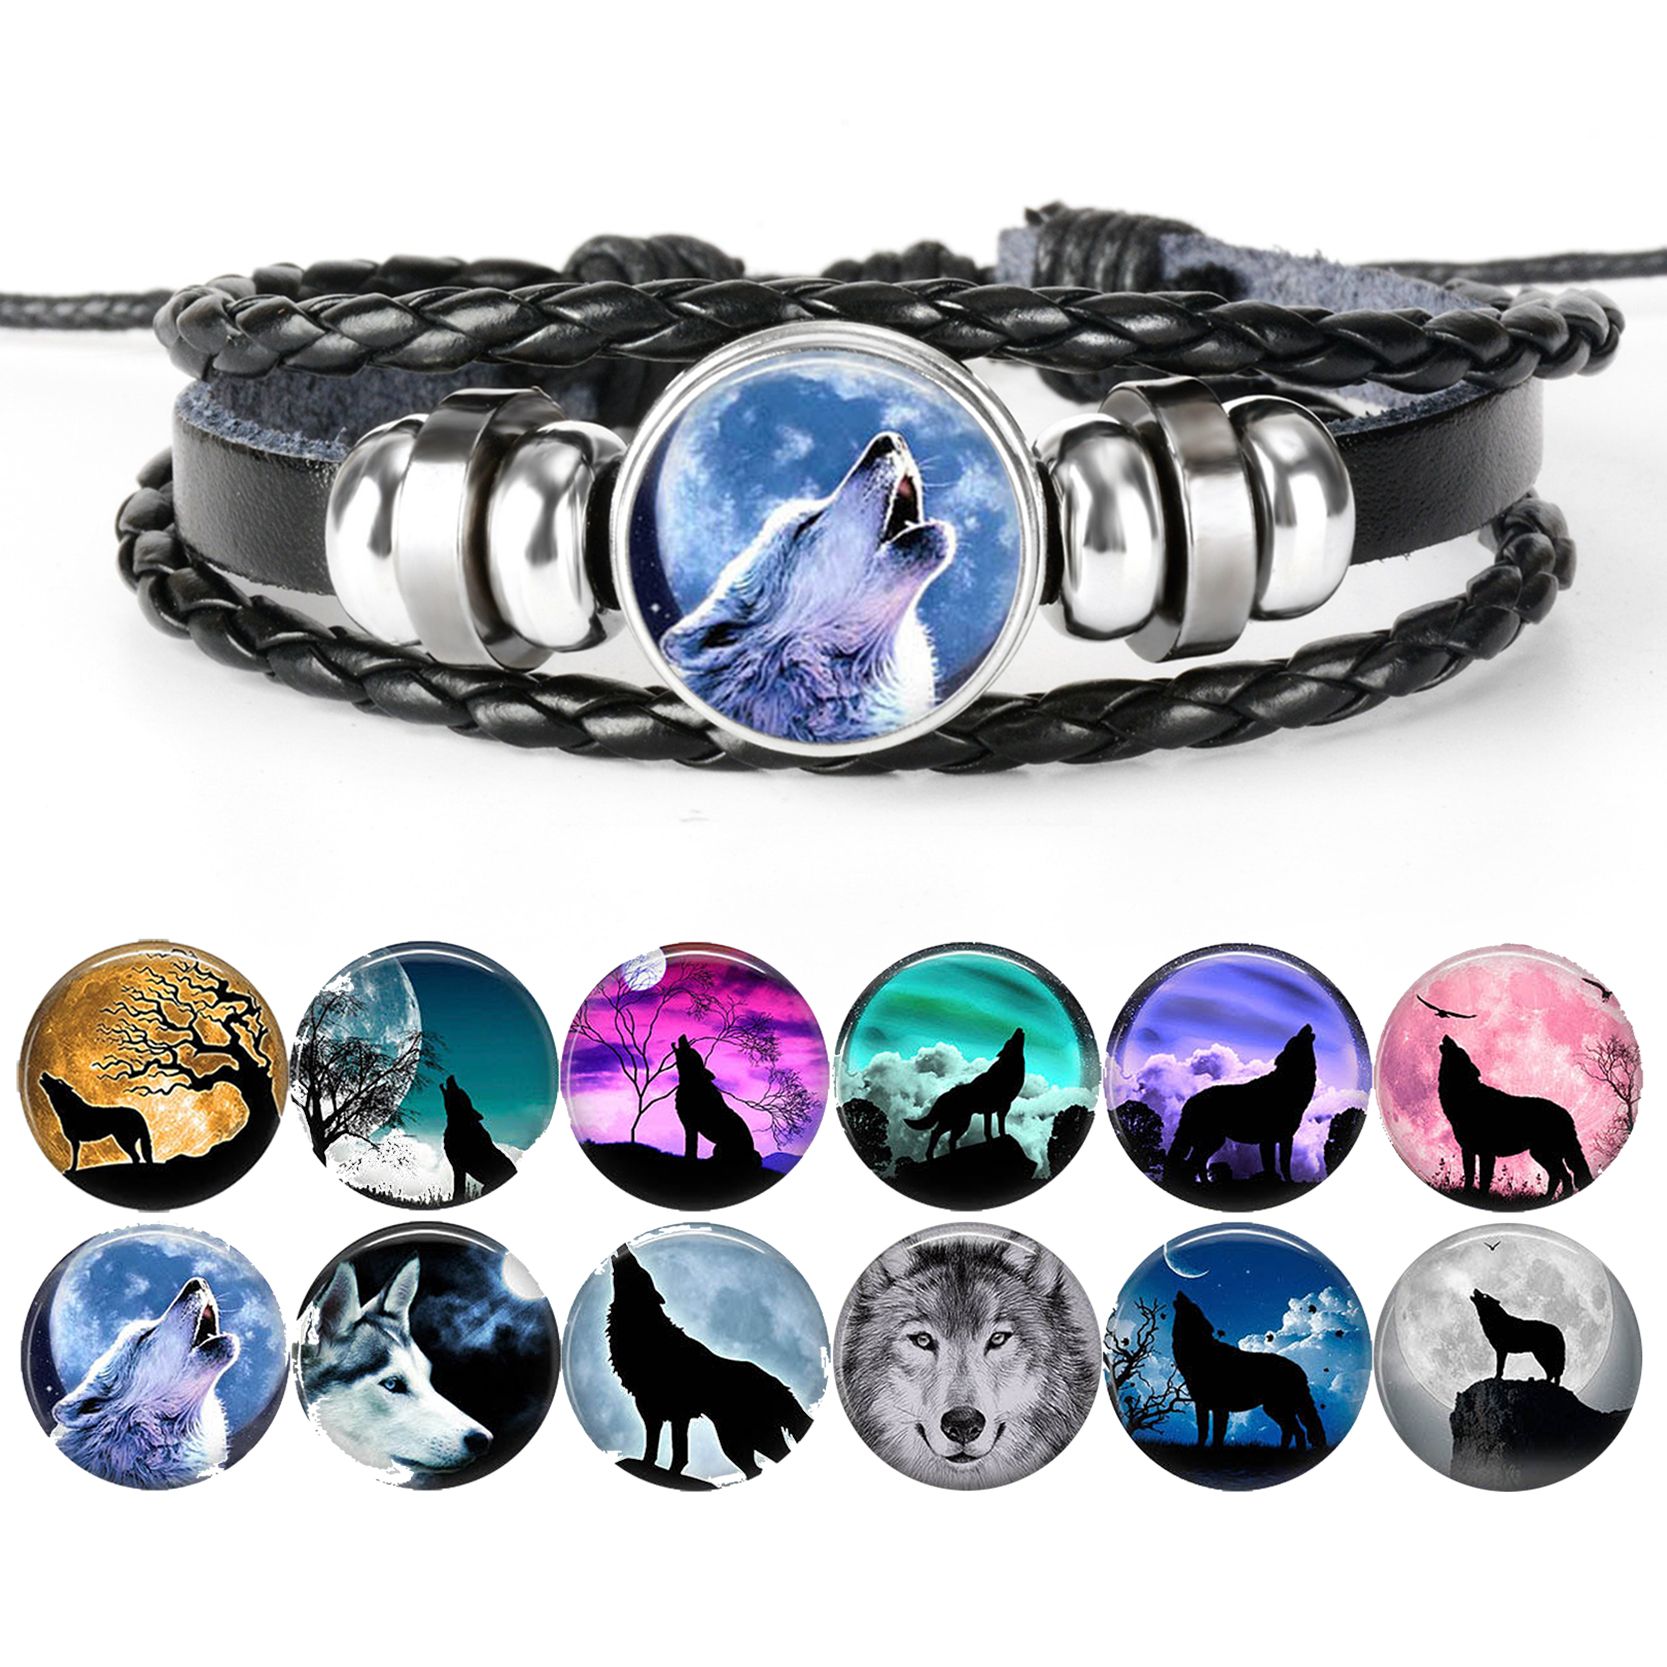 High Quality Men's Wolf Bracelets Hot Selling Wolf Charm Leather Bracelets Punk Jewelry PU Leather Bangle Gifts for Men Birthday image